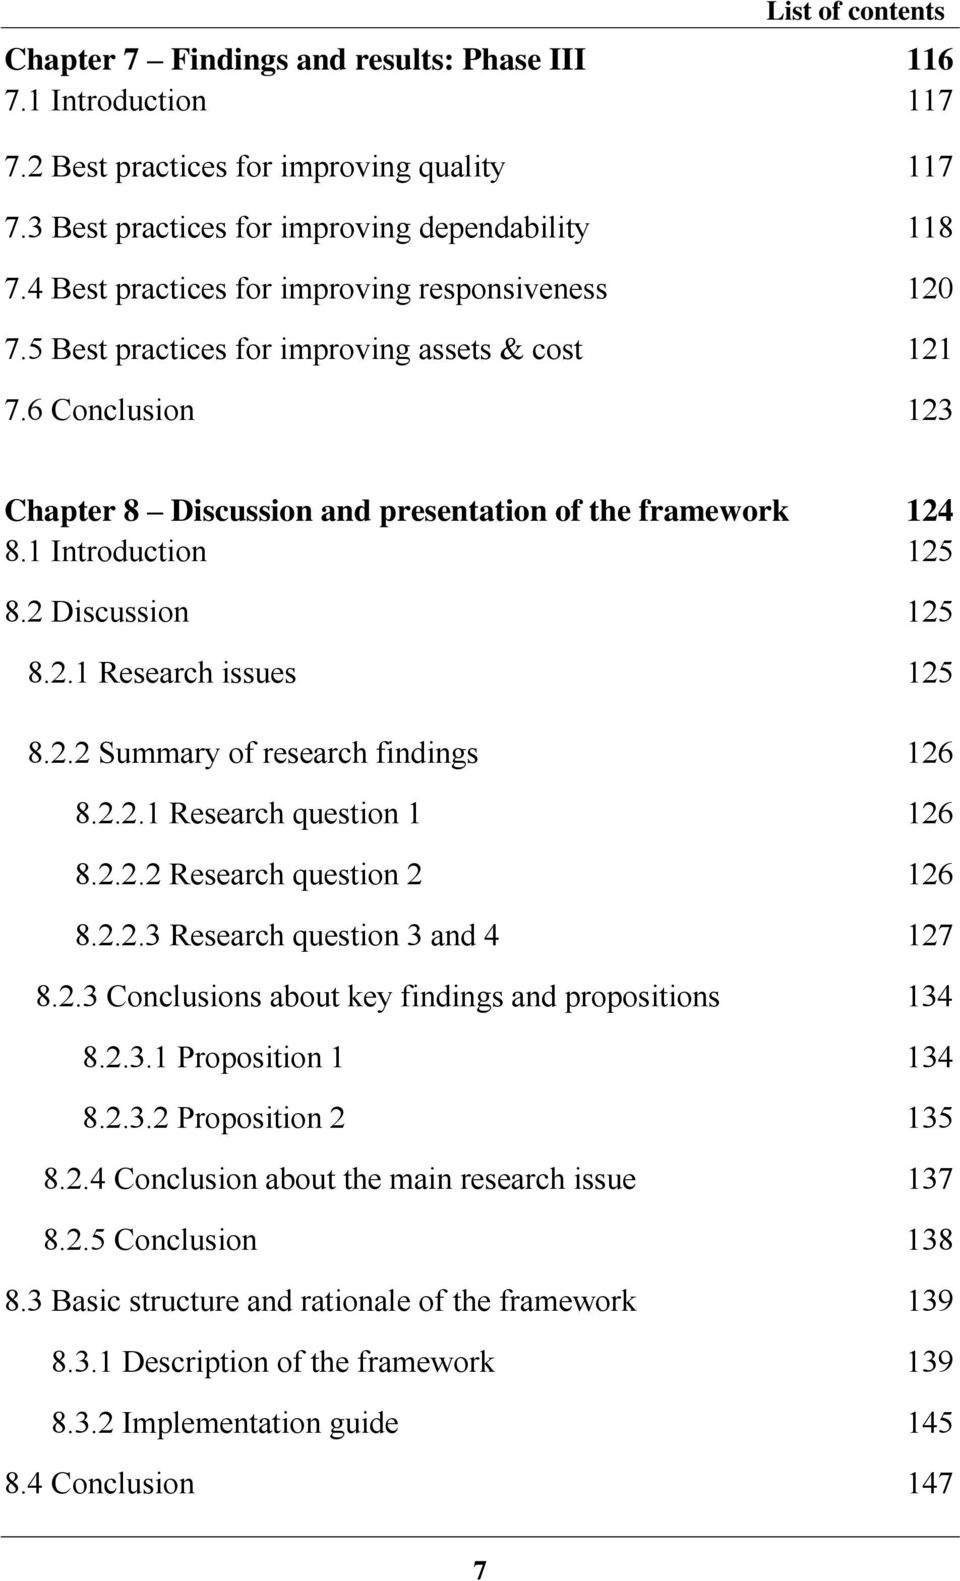 1 Introduction 125 8.2 Discussion 125 8.2.1 Research issues 125 8.2.2 Summary of research findings 126 8.2.2.1 Research question 1 126 8.2.2.2 Research question 2 126 8.2.2.3 Research question 3 and 4 127 8.